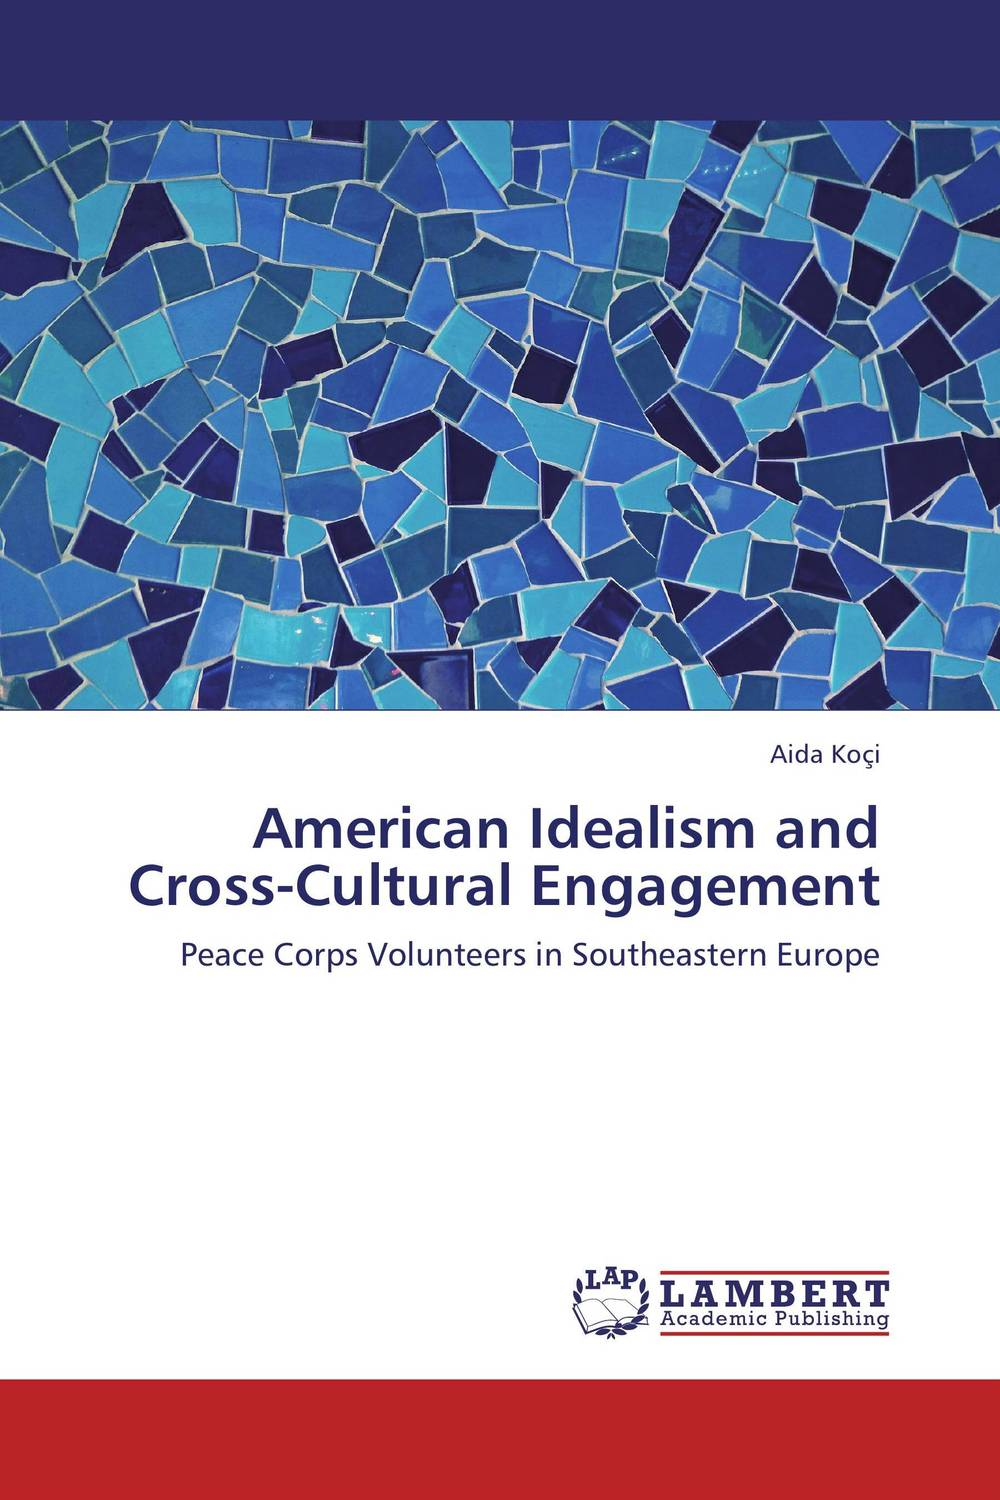 American Idealism and Cross-Cultural Engagement